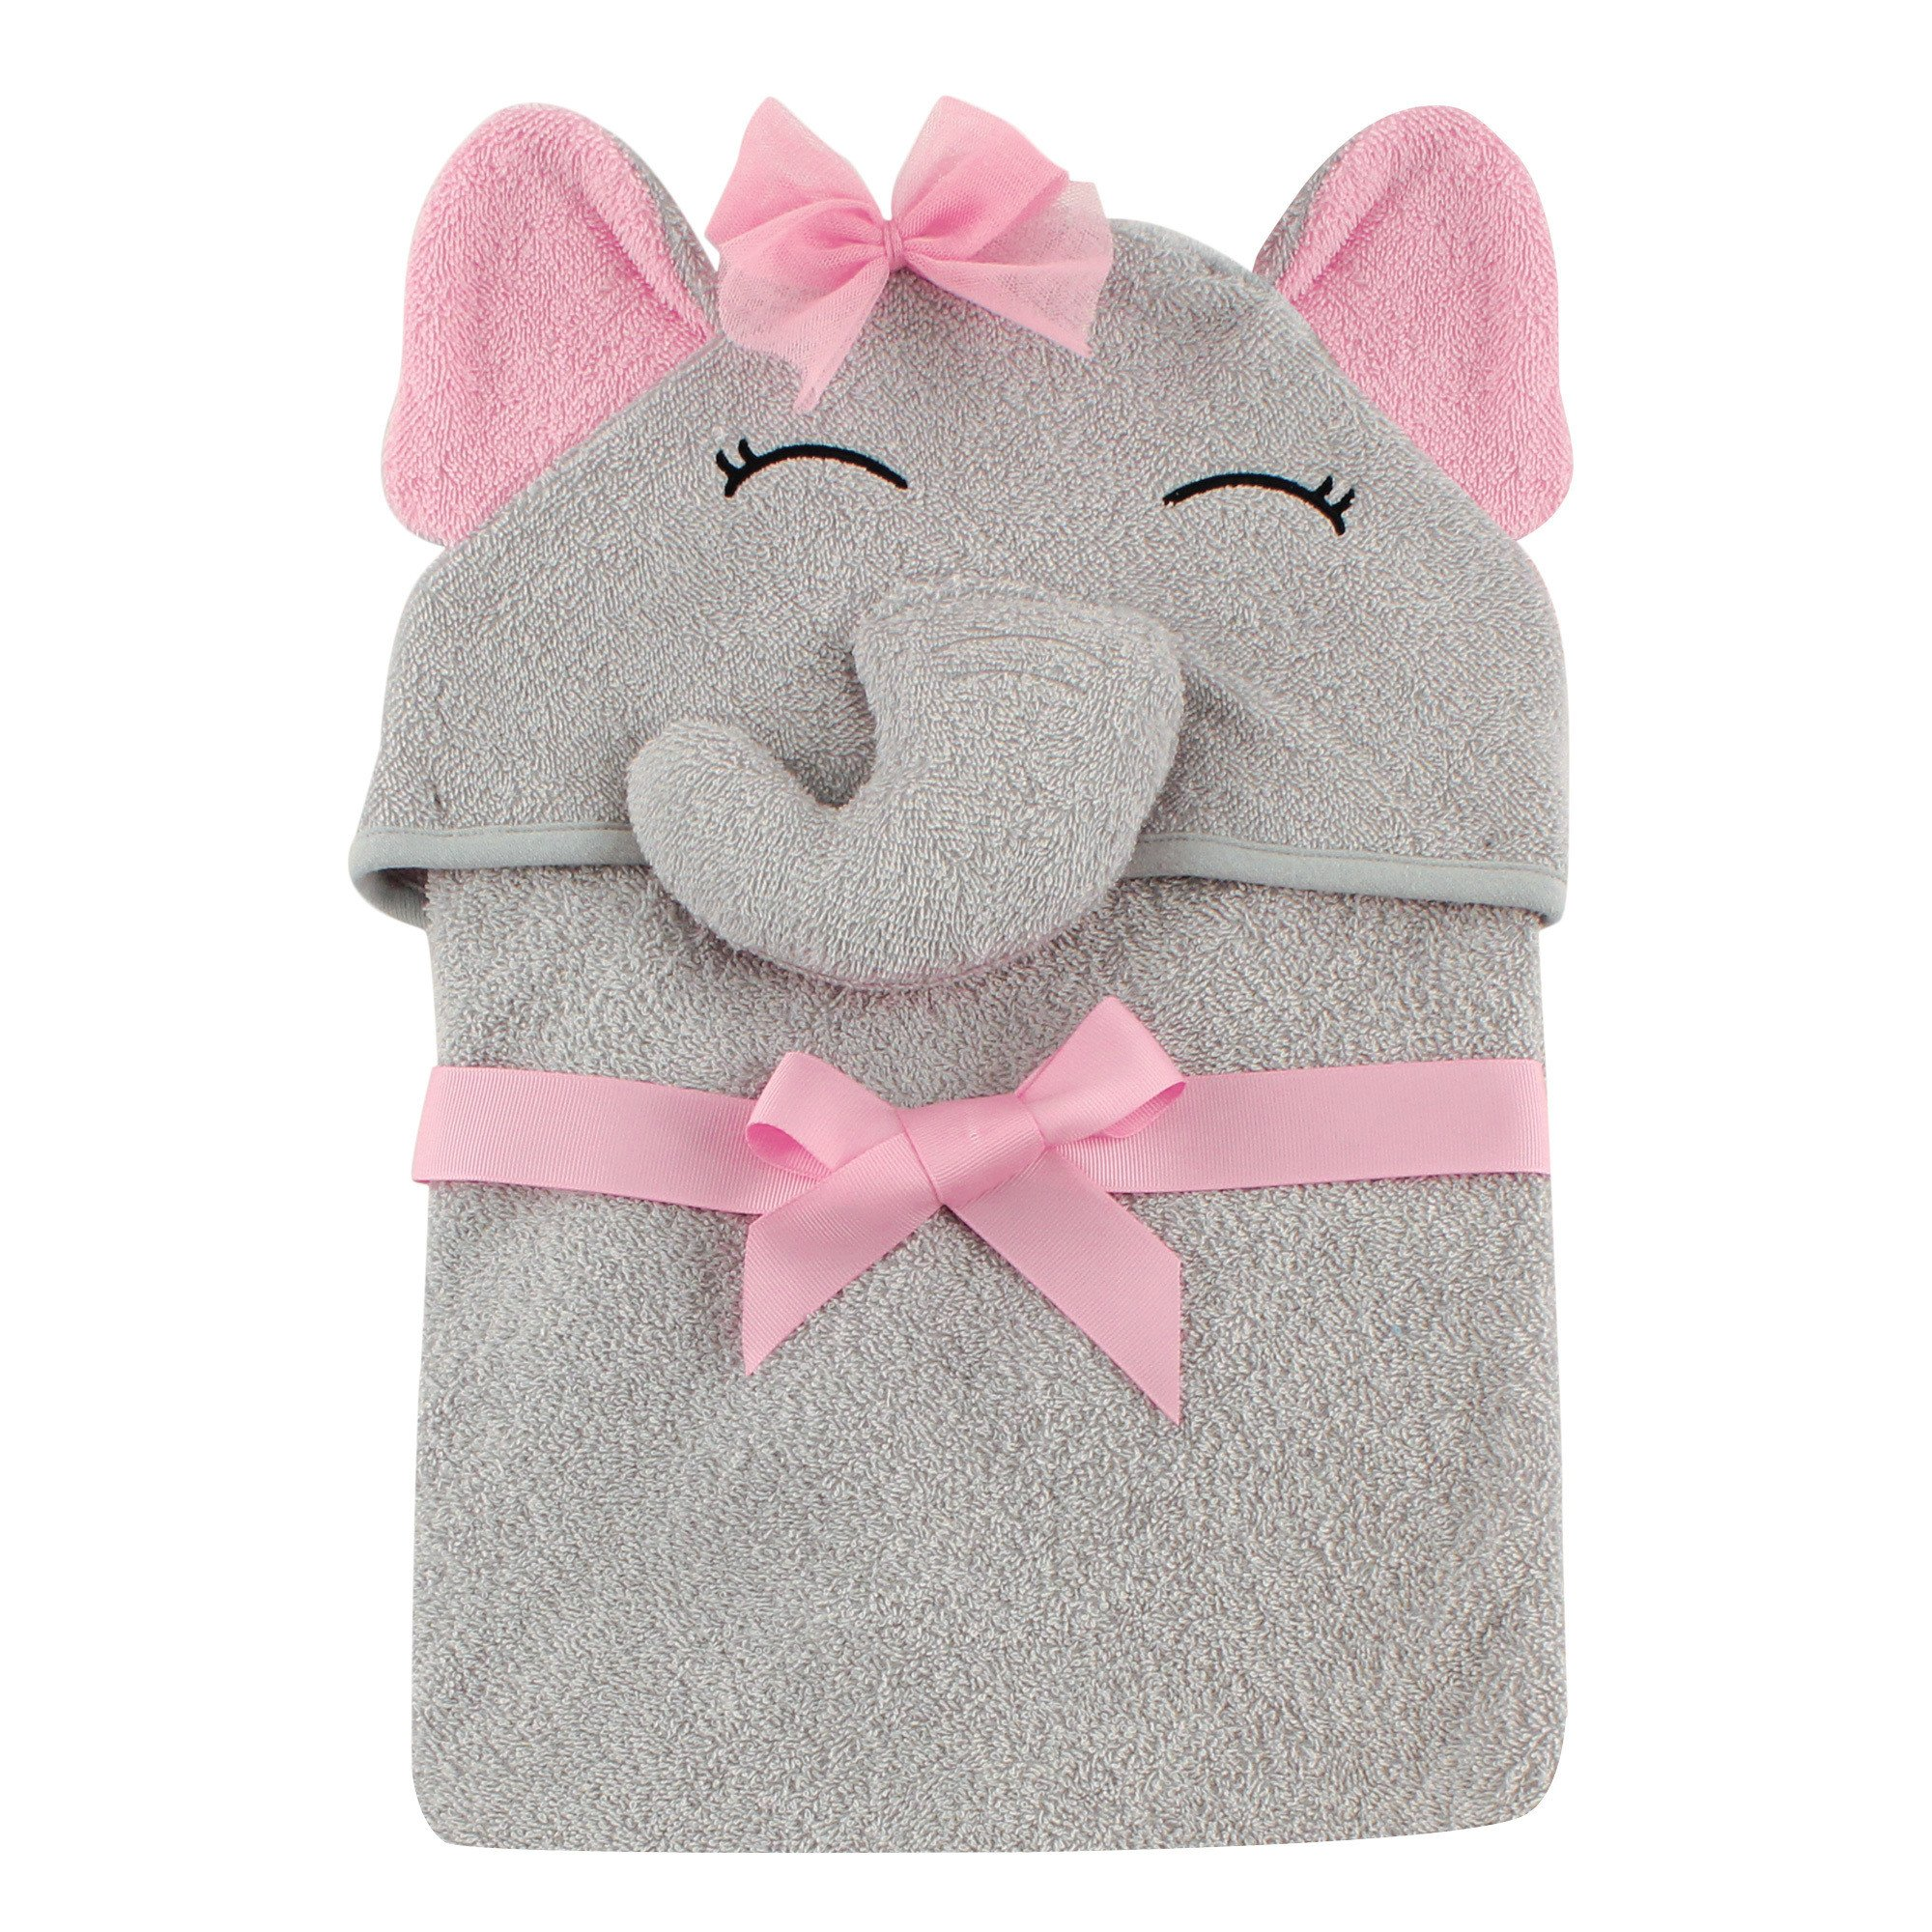 Hudson Baby Animal Face Hooded Towel, Girl Elephant by Hudson Baby (Image #2)